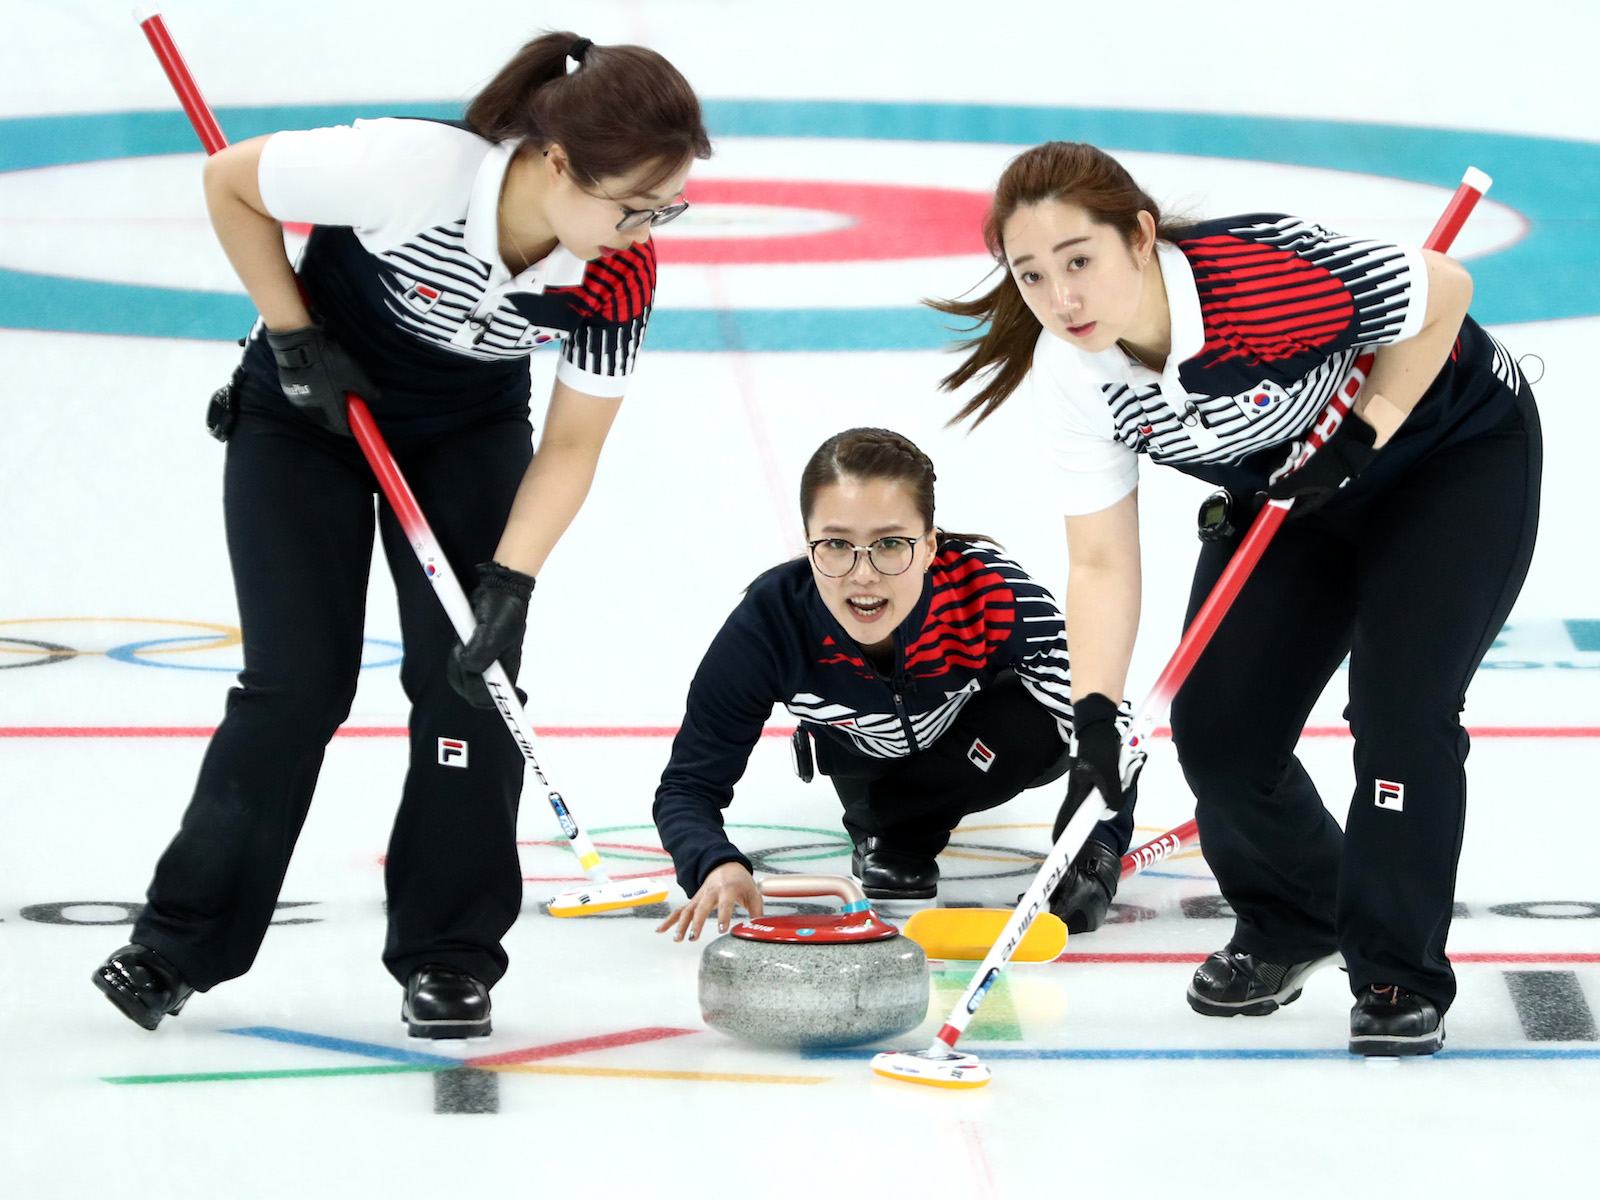 USA curlers' first gold medals were the wrong ones